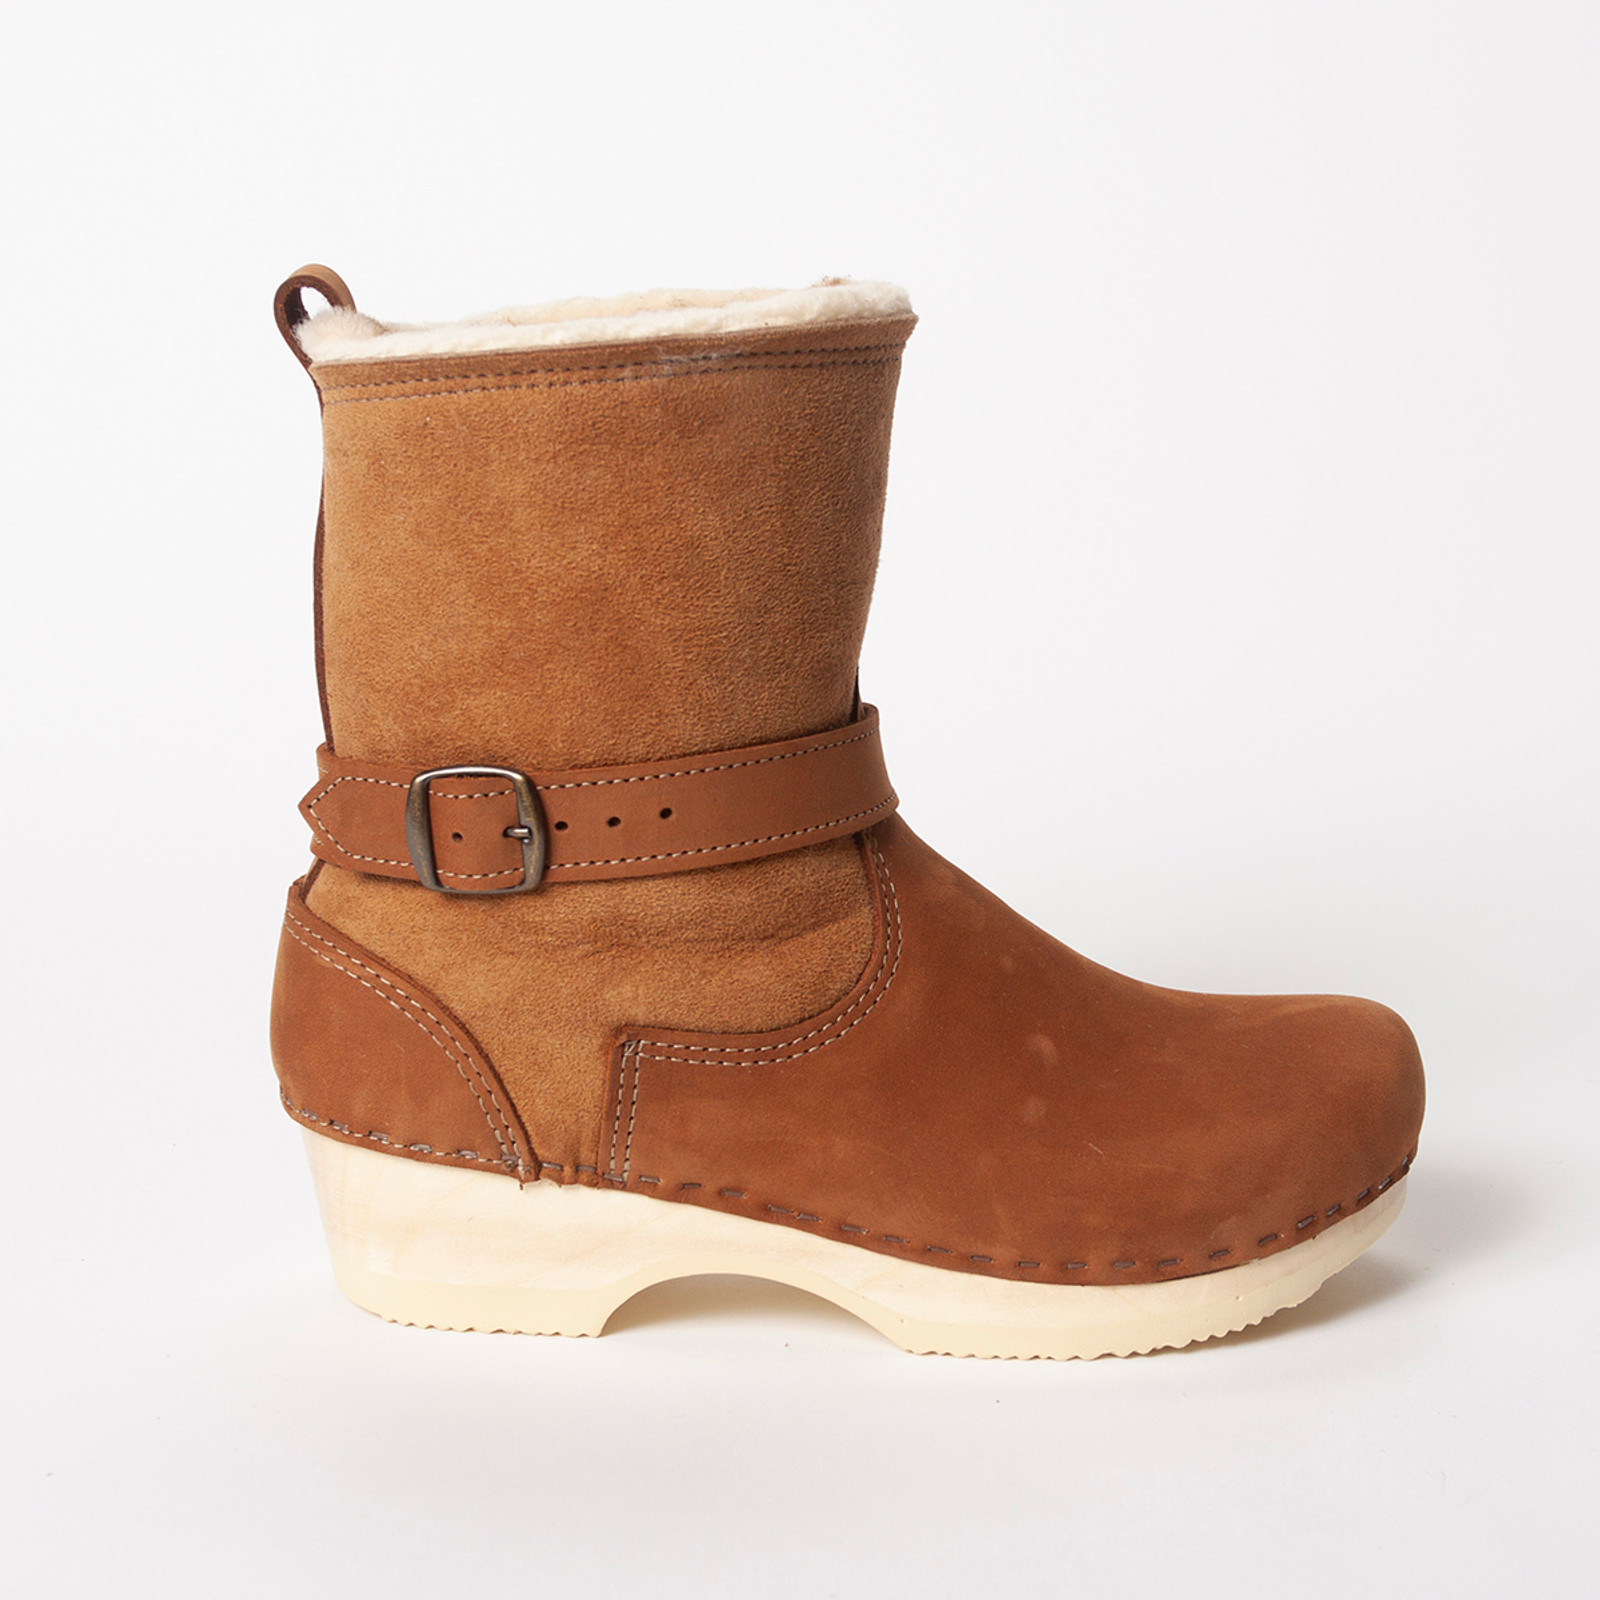 "7"" Shearling Clog Boots - Low Heel"